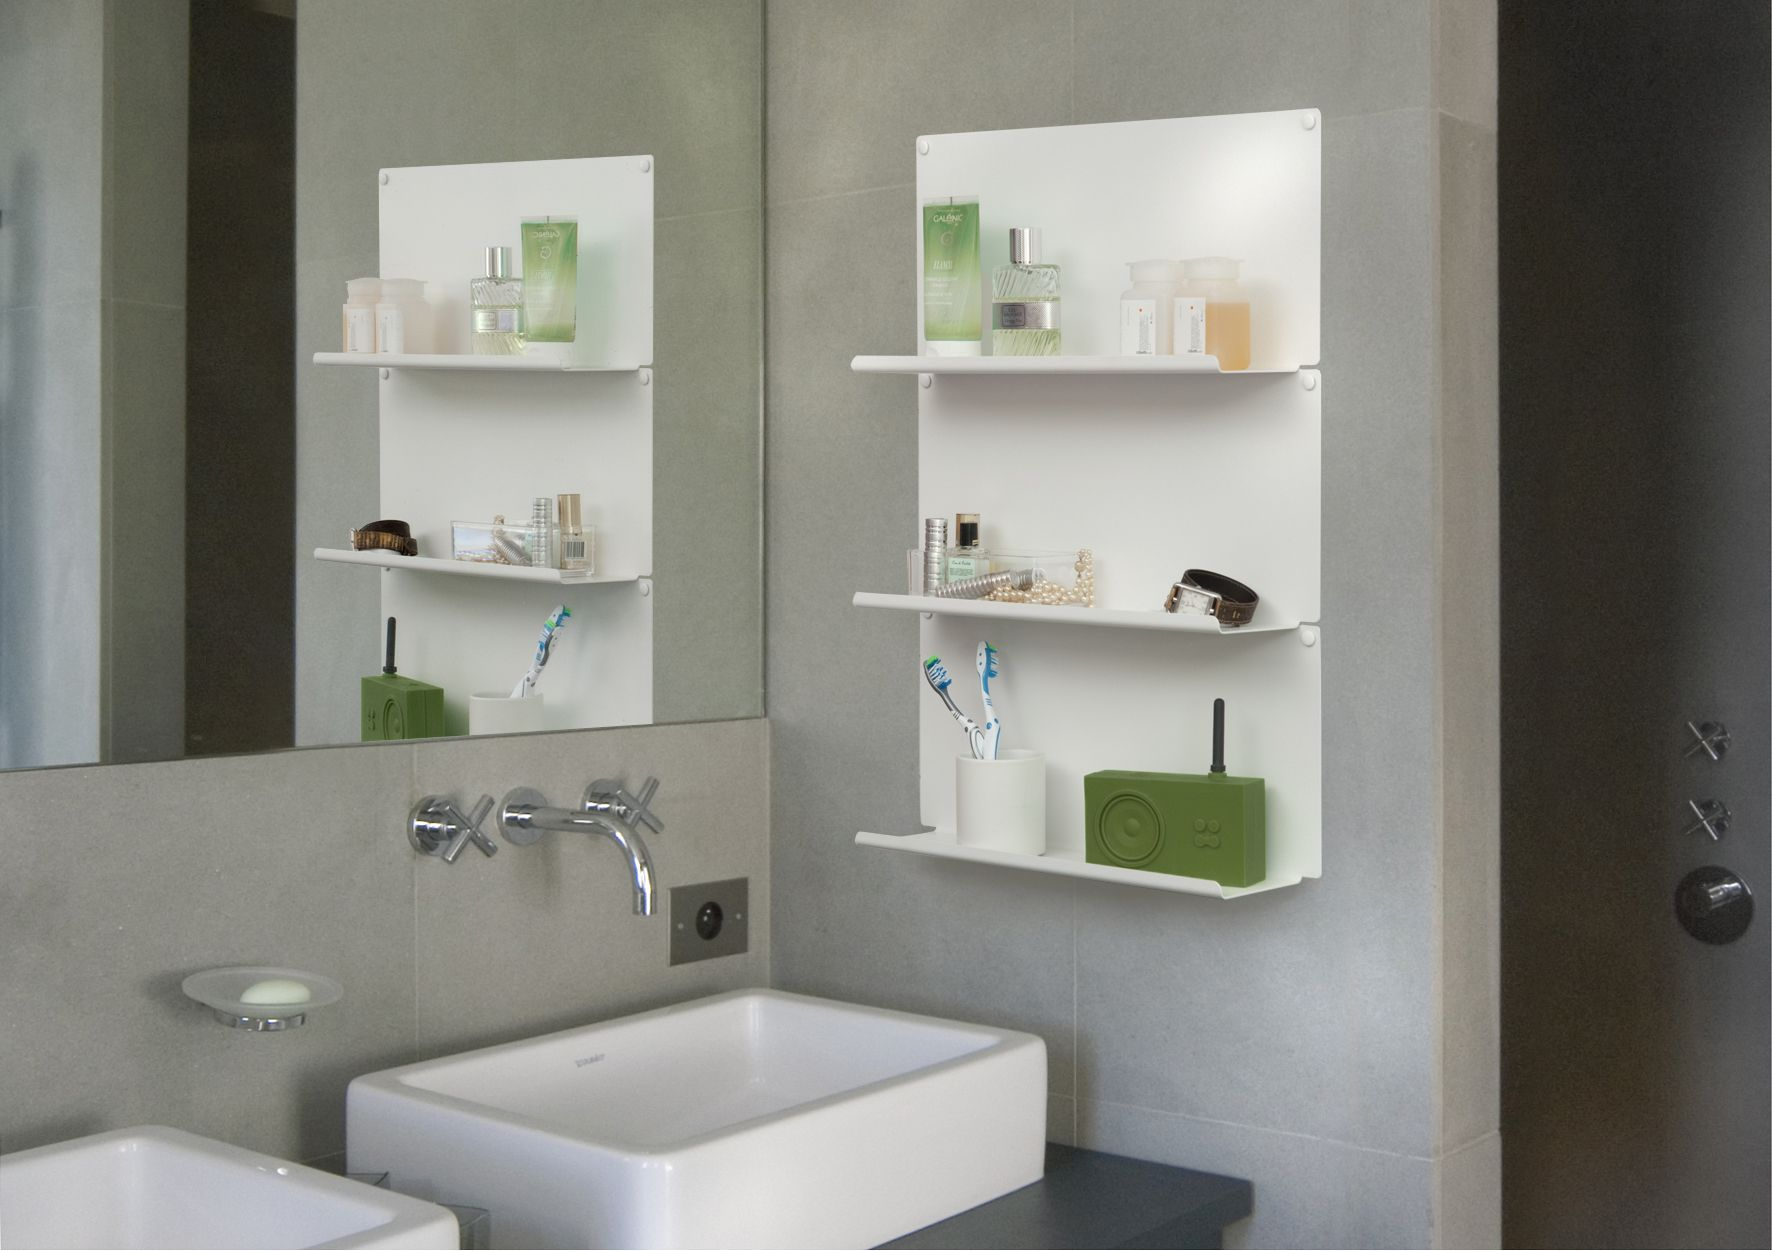 cabinets wonderful storage etagere towel toilet over sleek gorgeous plus fanciful withand concept shelf ga bathroom in